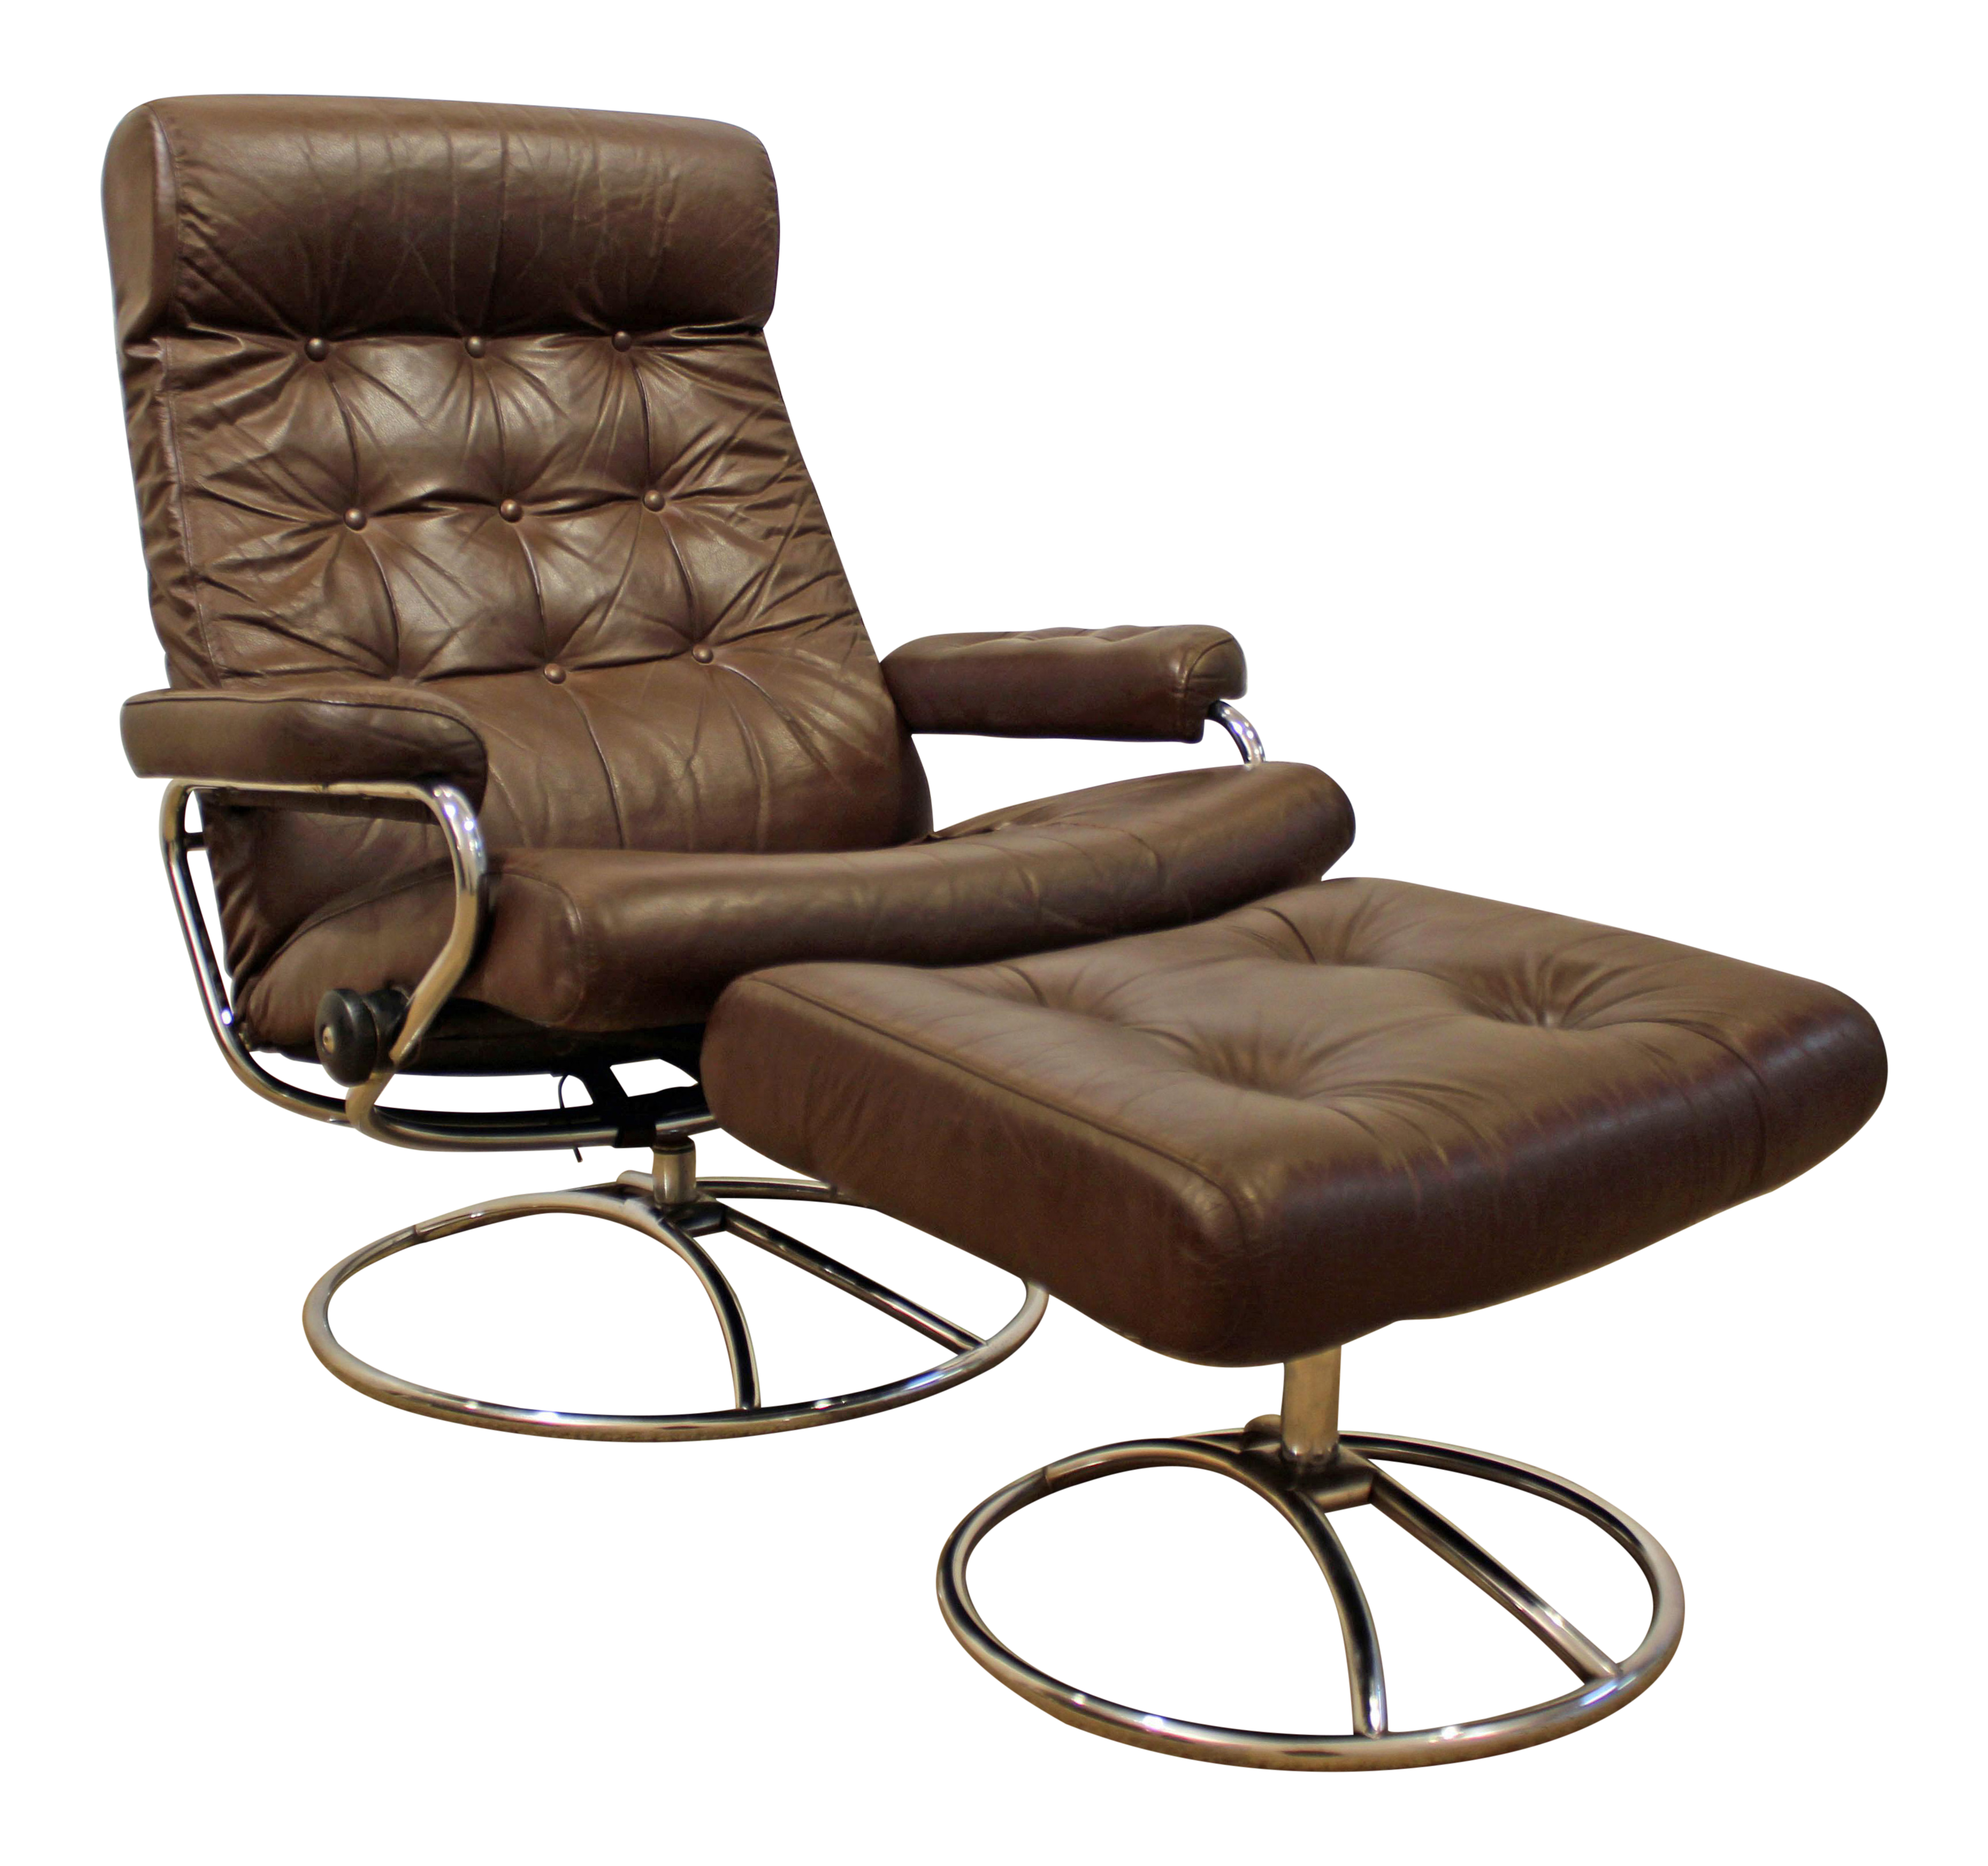 Attractive Mid Century Danish Modern Ekornes Stressless Chrome Lounge Chair/Ottoman